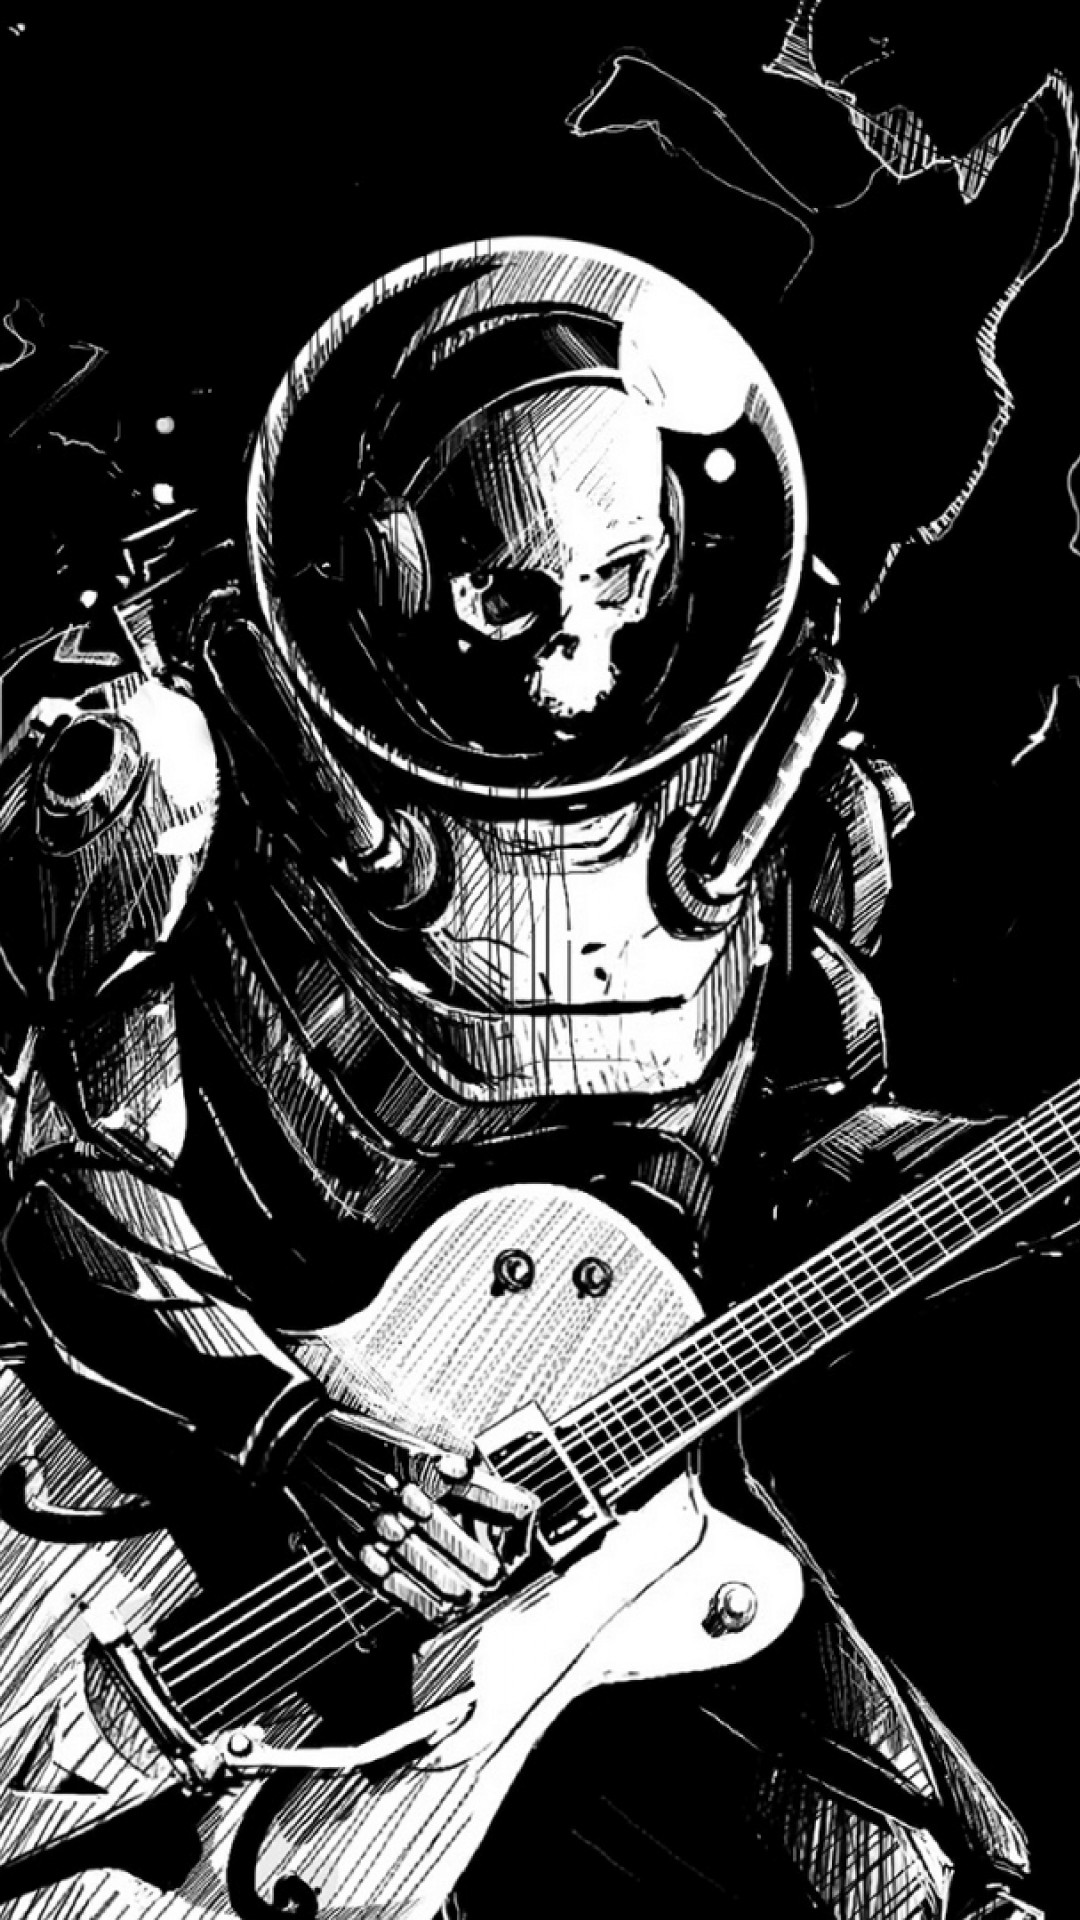 Skeleton Plays Guitar Hd Wallpaper Iphone 6 6s Plus Hd Wallpaper Wallpapers Net